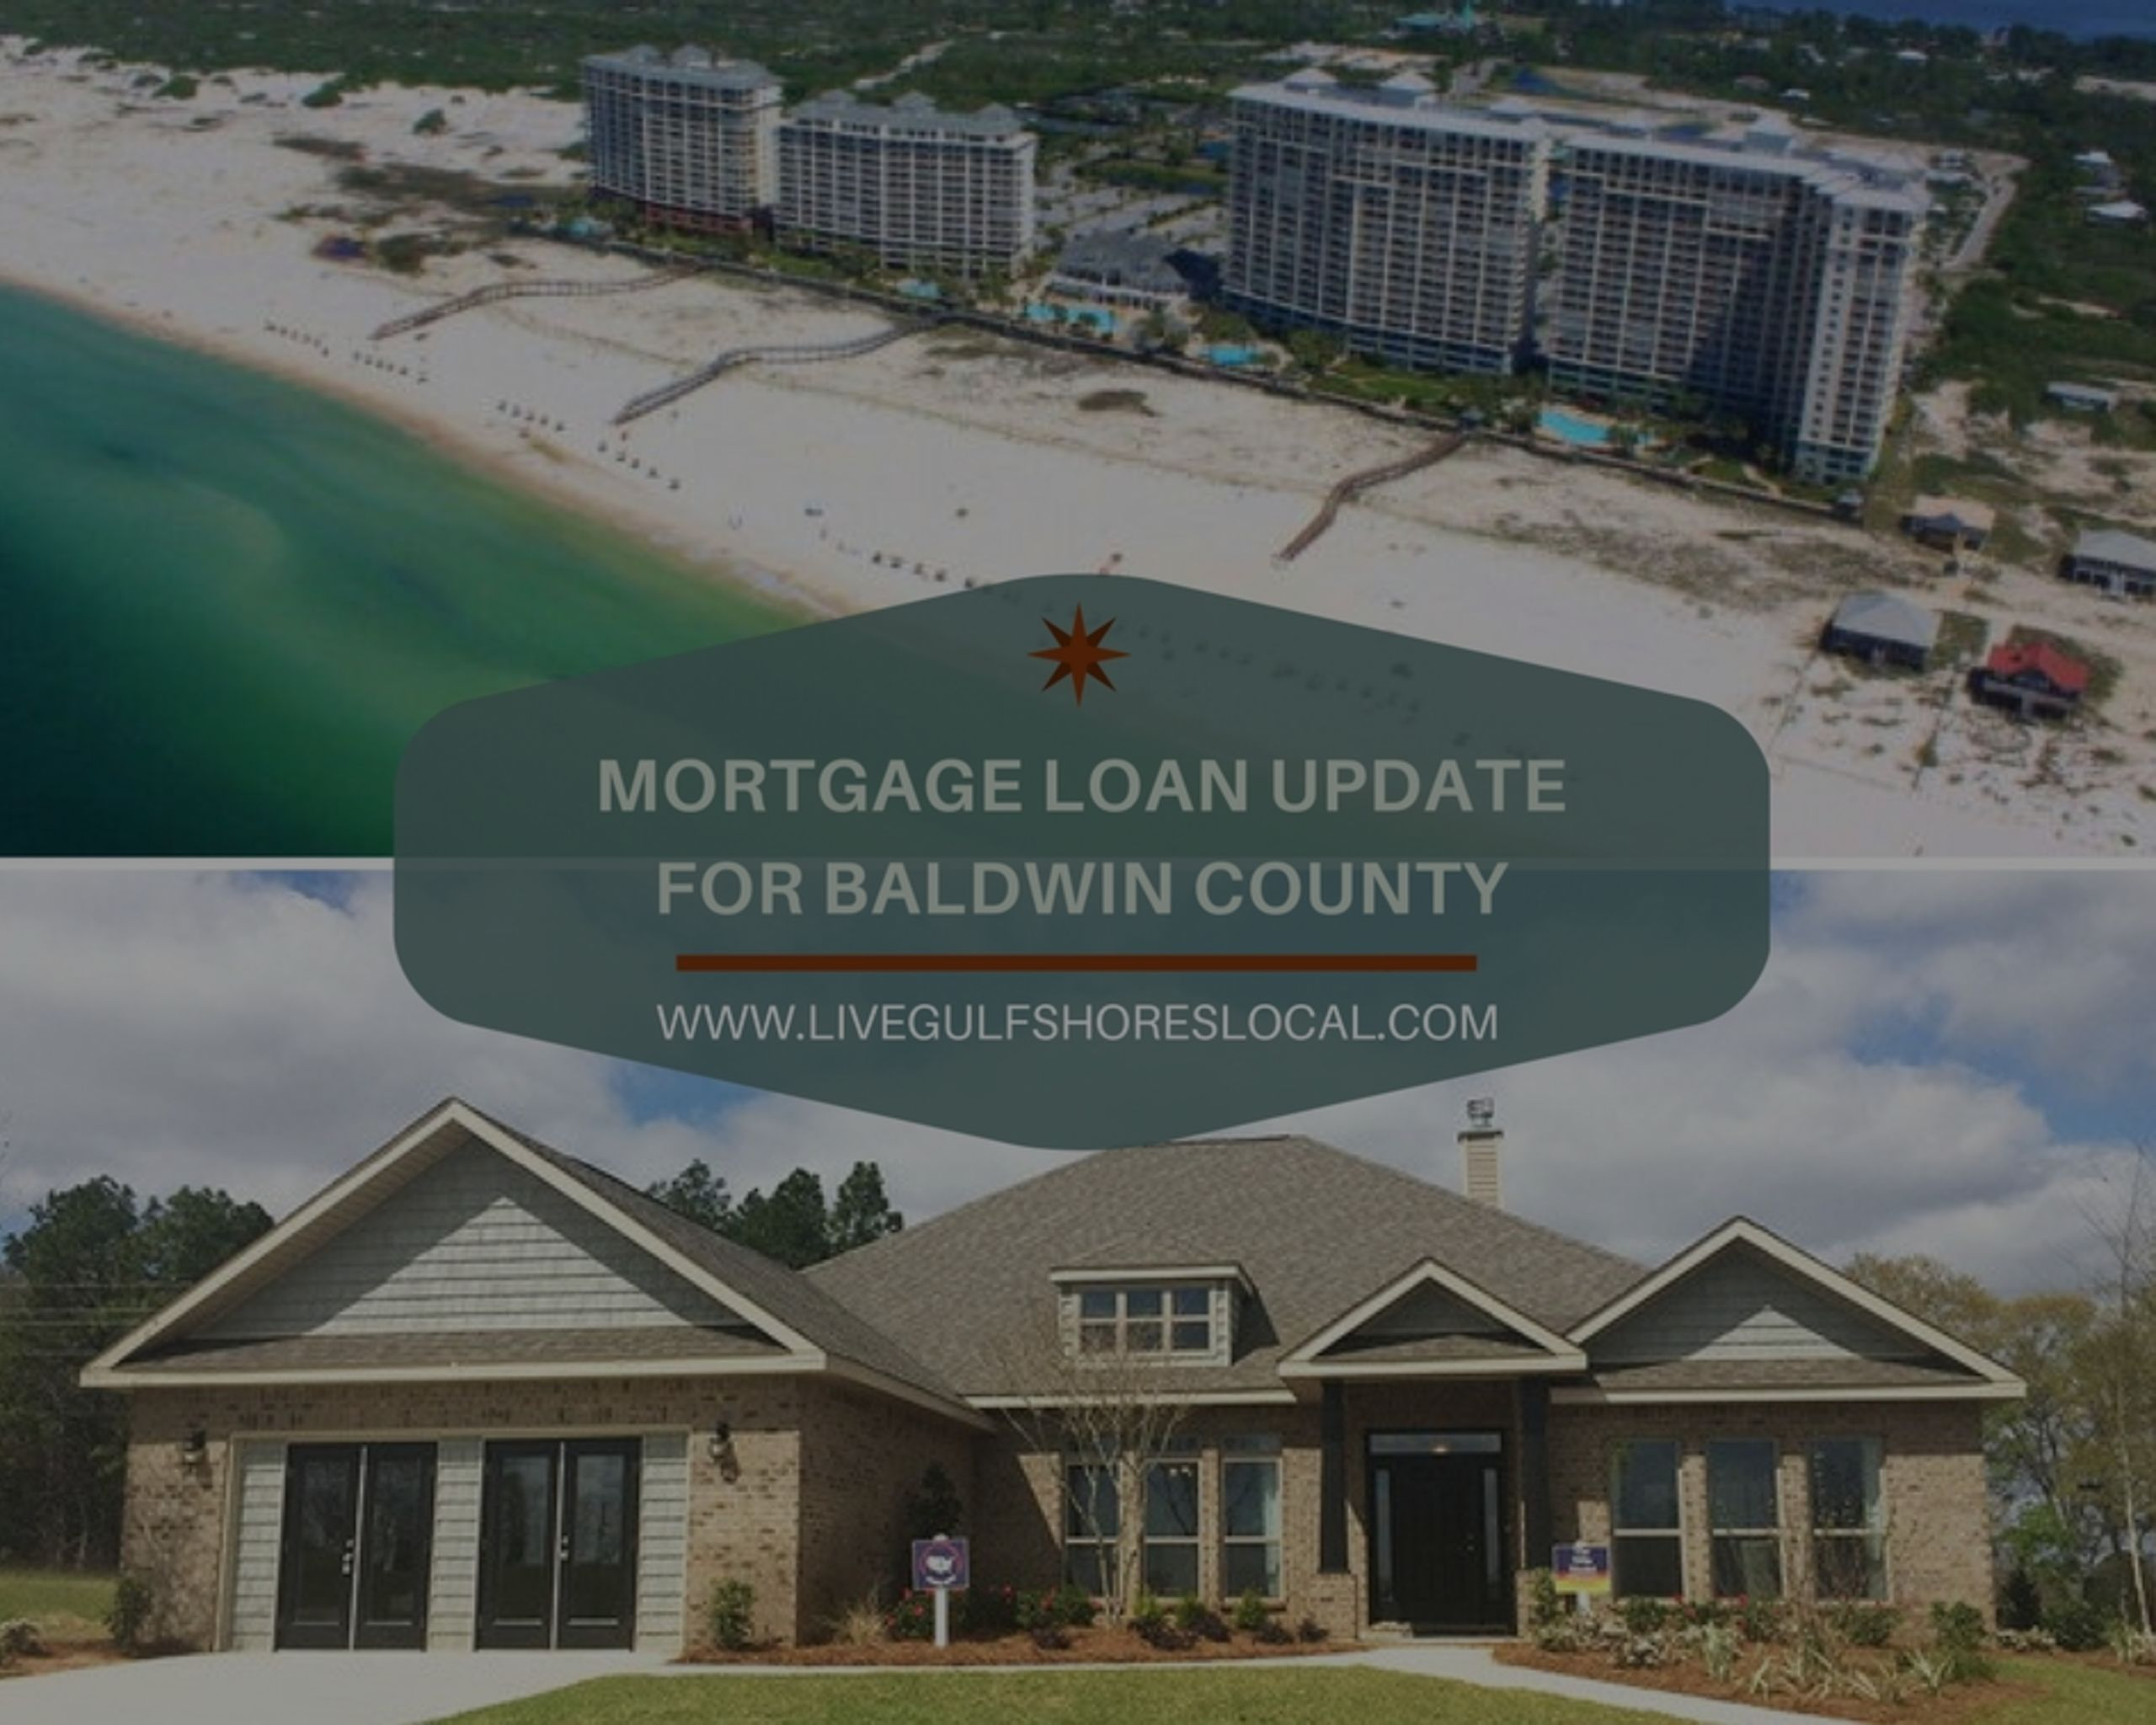 Mortgage Loan Update for Baldwin County – 1/17/19